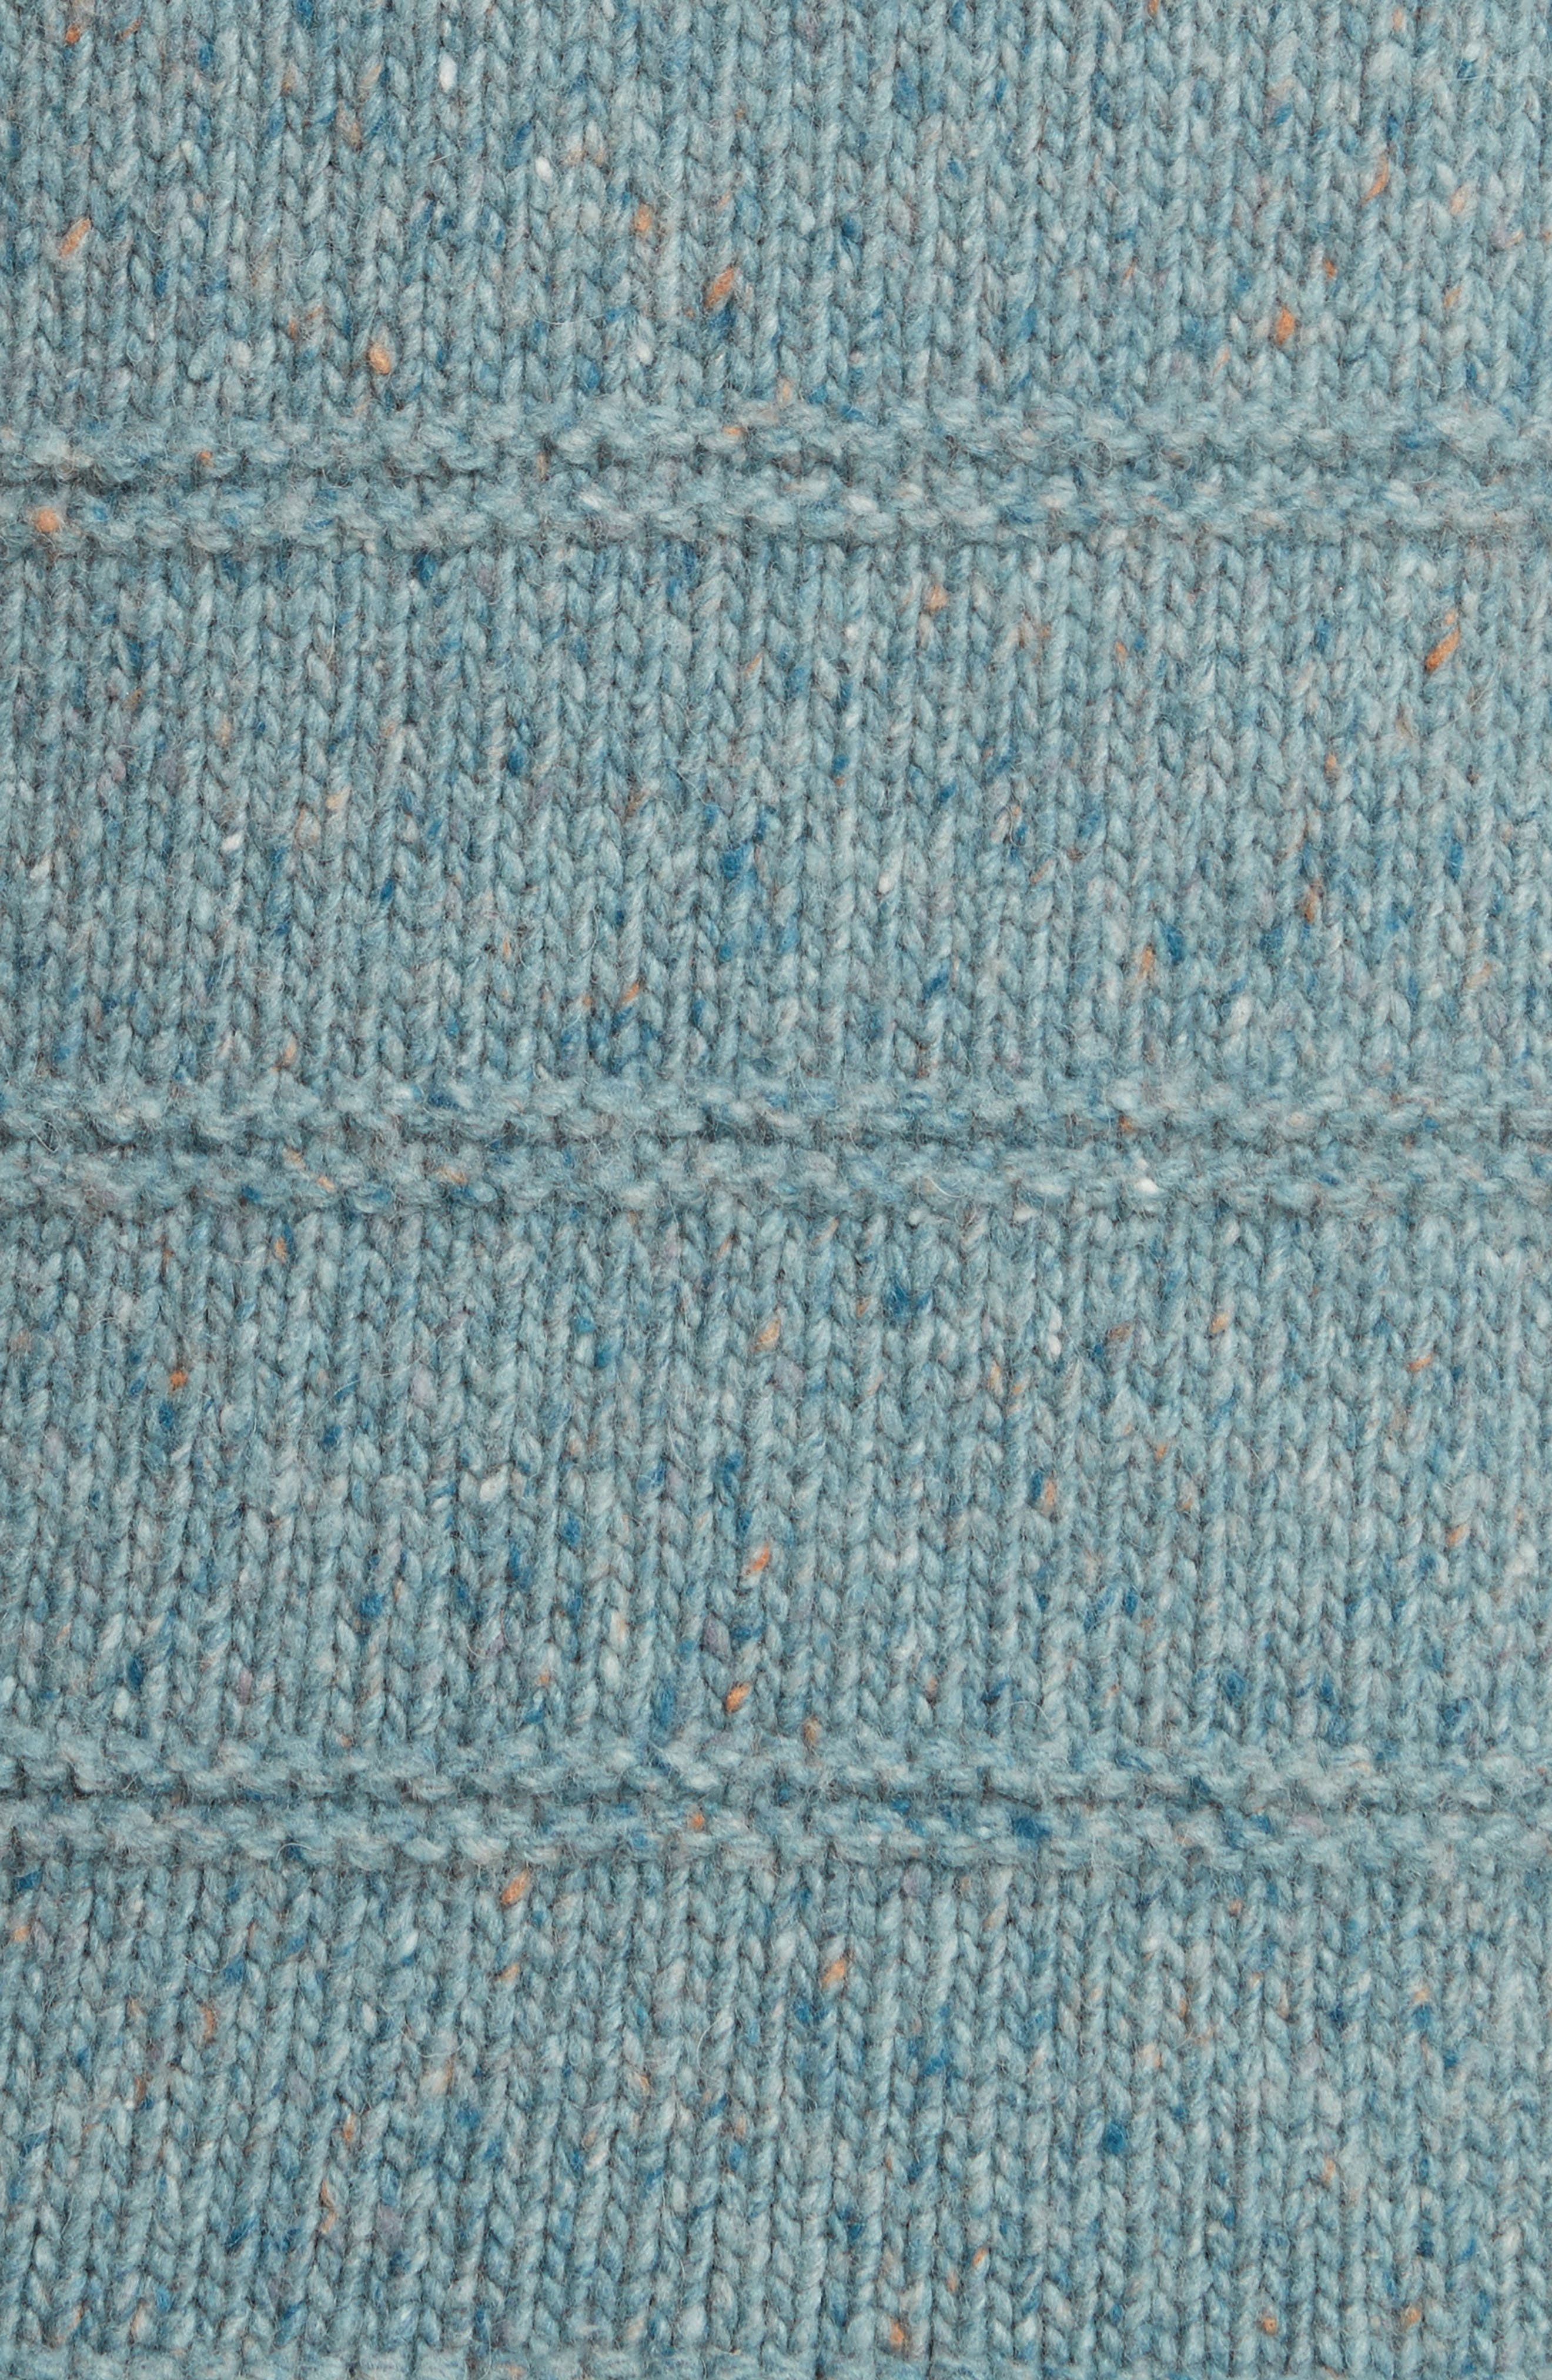 Donegal Tweed Pullover,                             Alternate thumbnail 5, color,